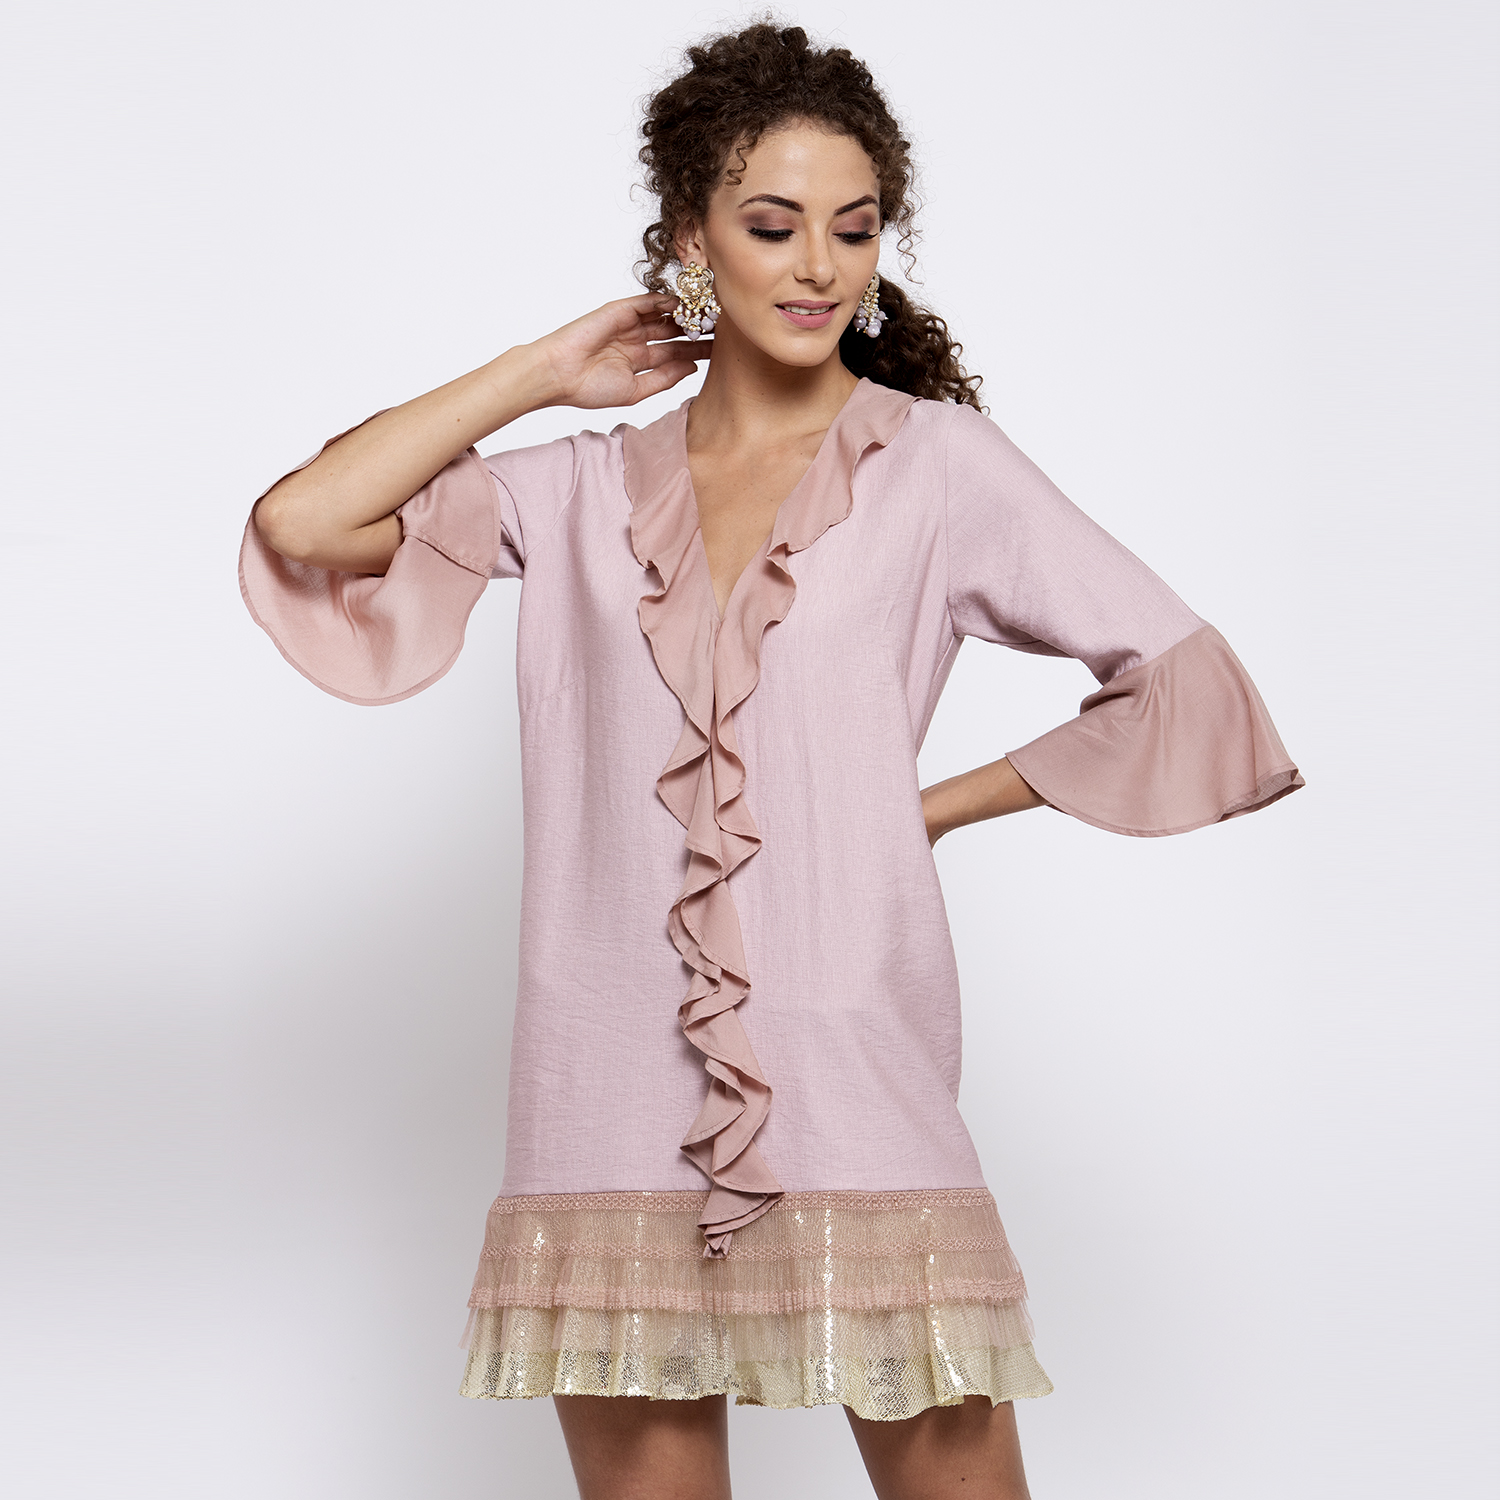 Pink linen frill dress with sequins emboidery at bottom